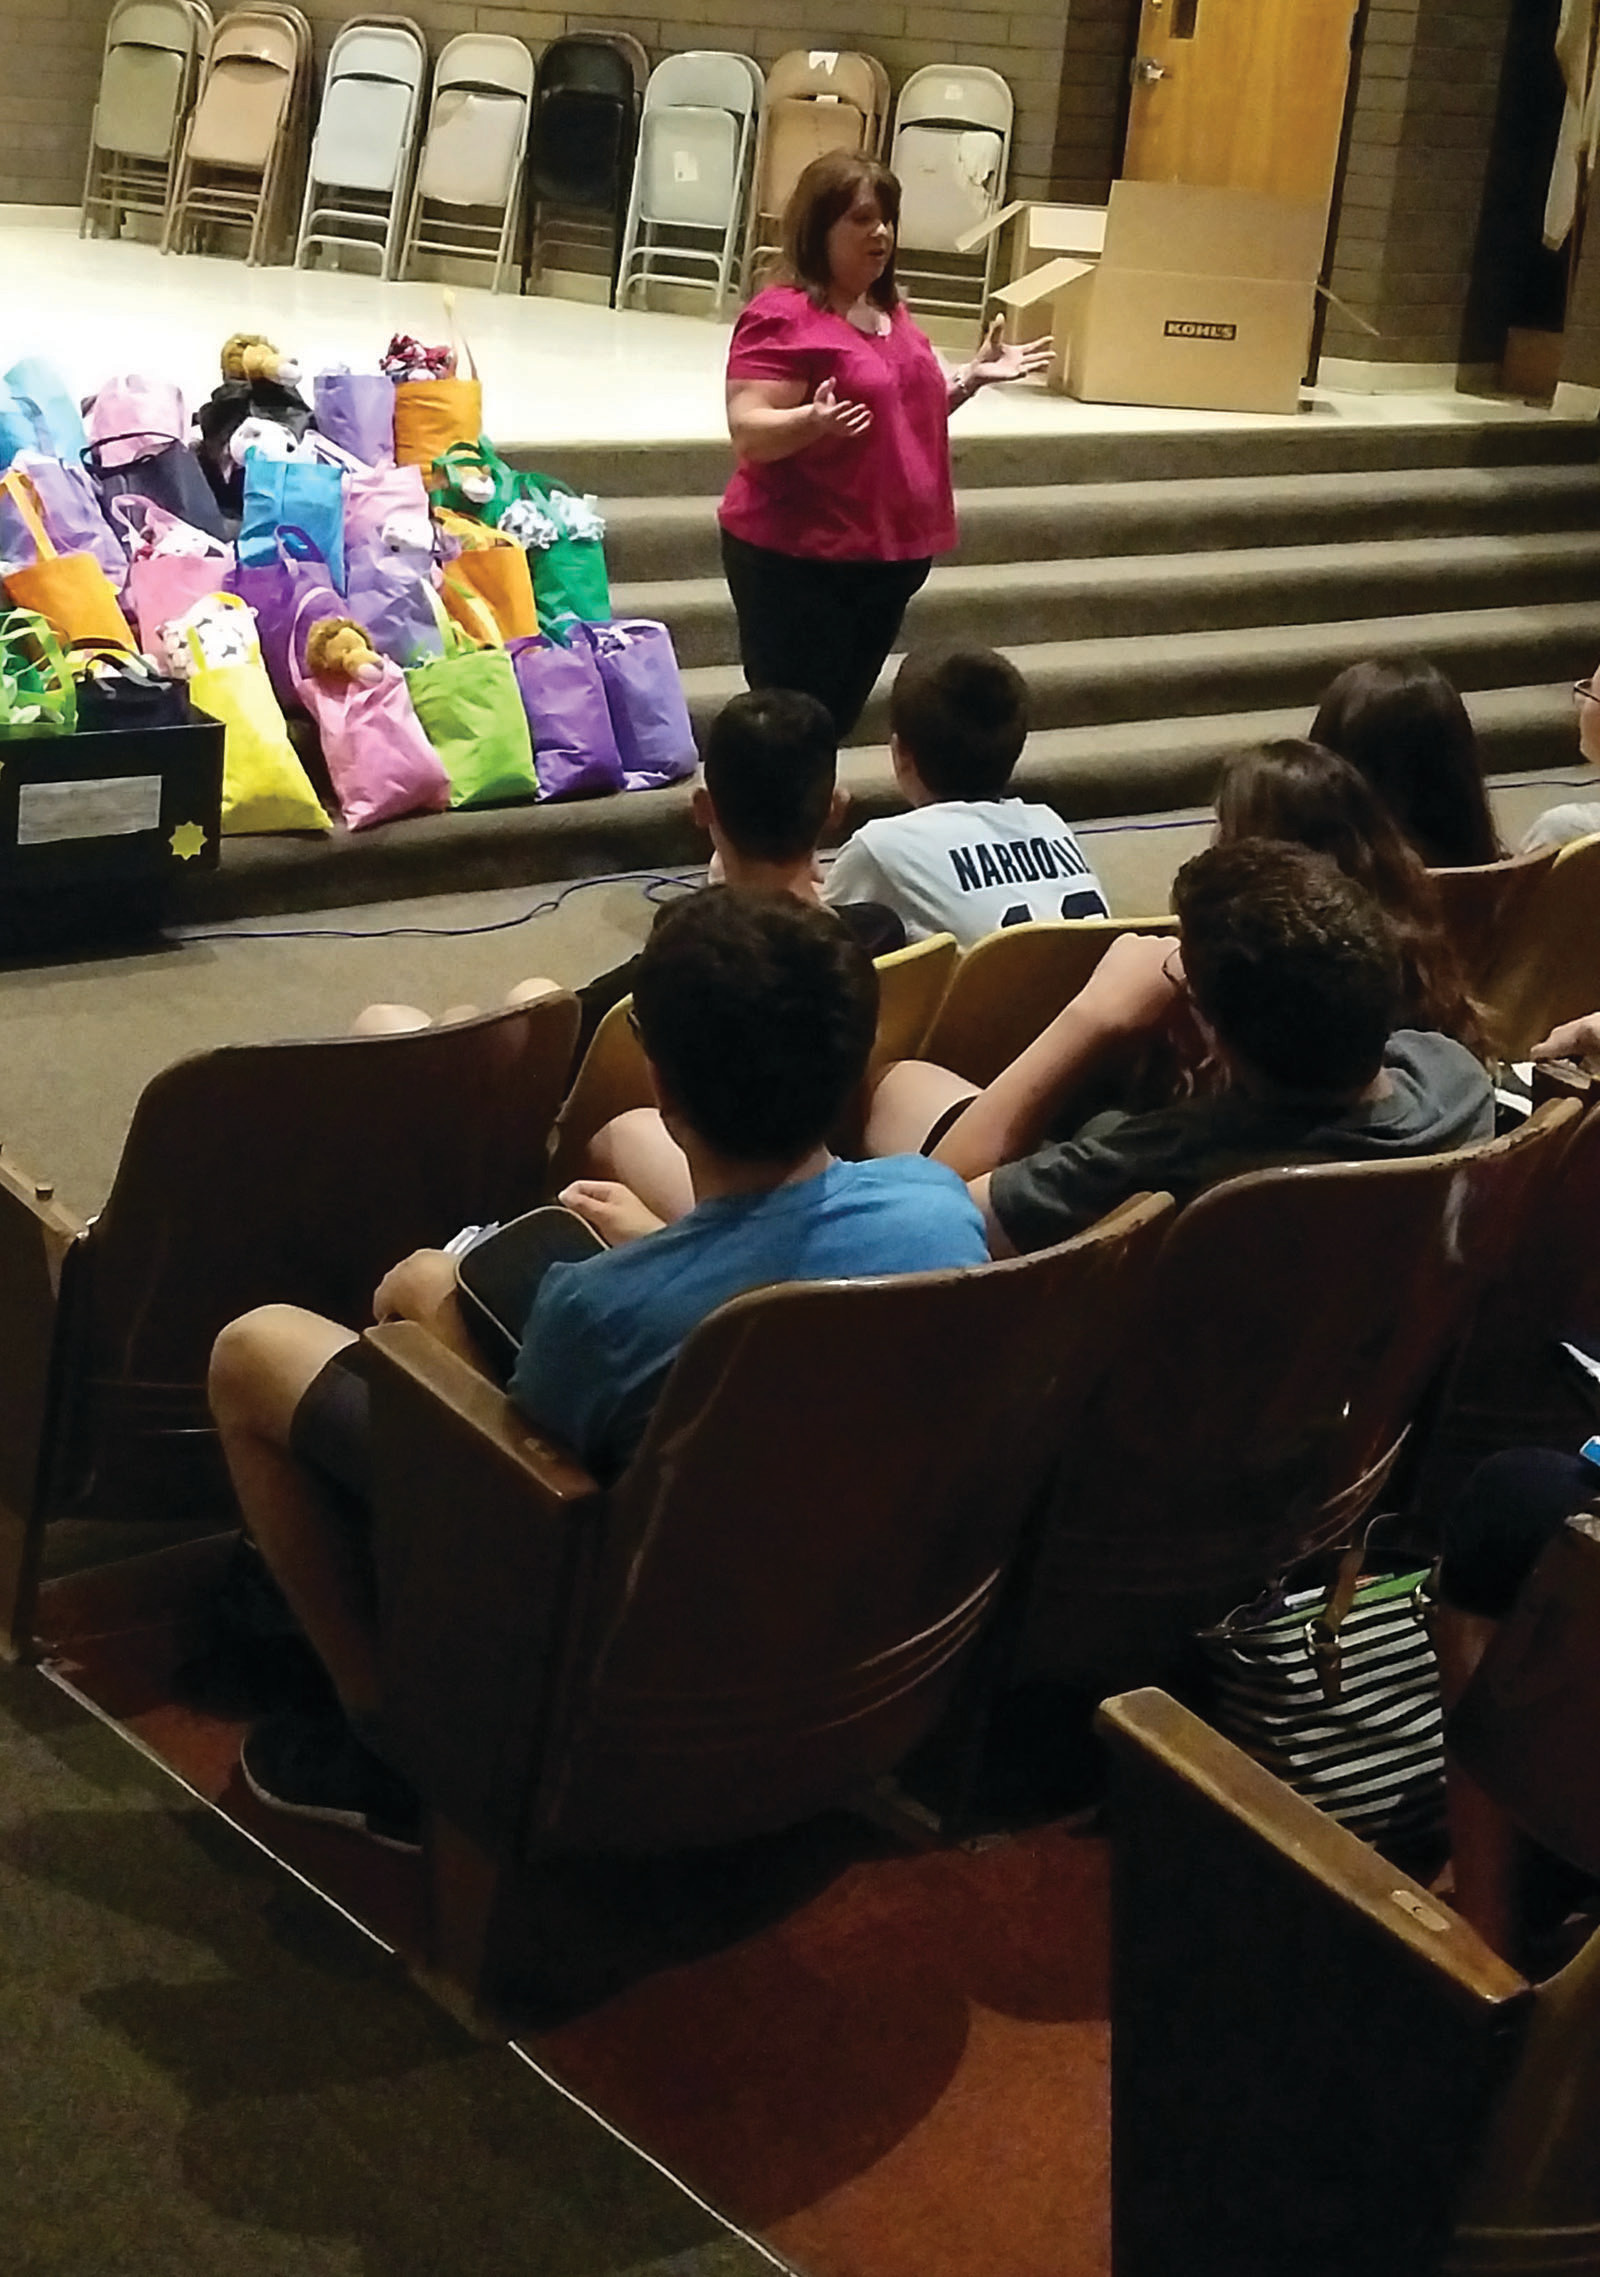 WHAT WE DO, AND WHY WE DO IT: President of Social Services for CCAP, Joanne Gregory, speaks to the students about the role that CCAP plays in helping residents get the resources they need.